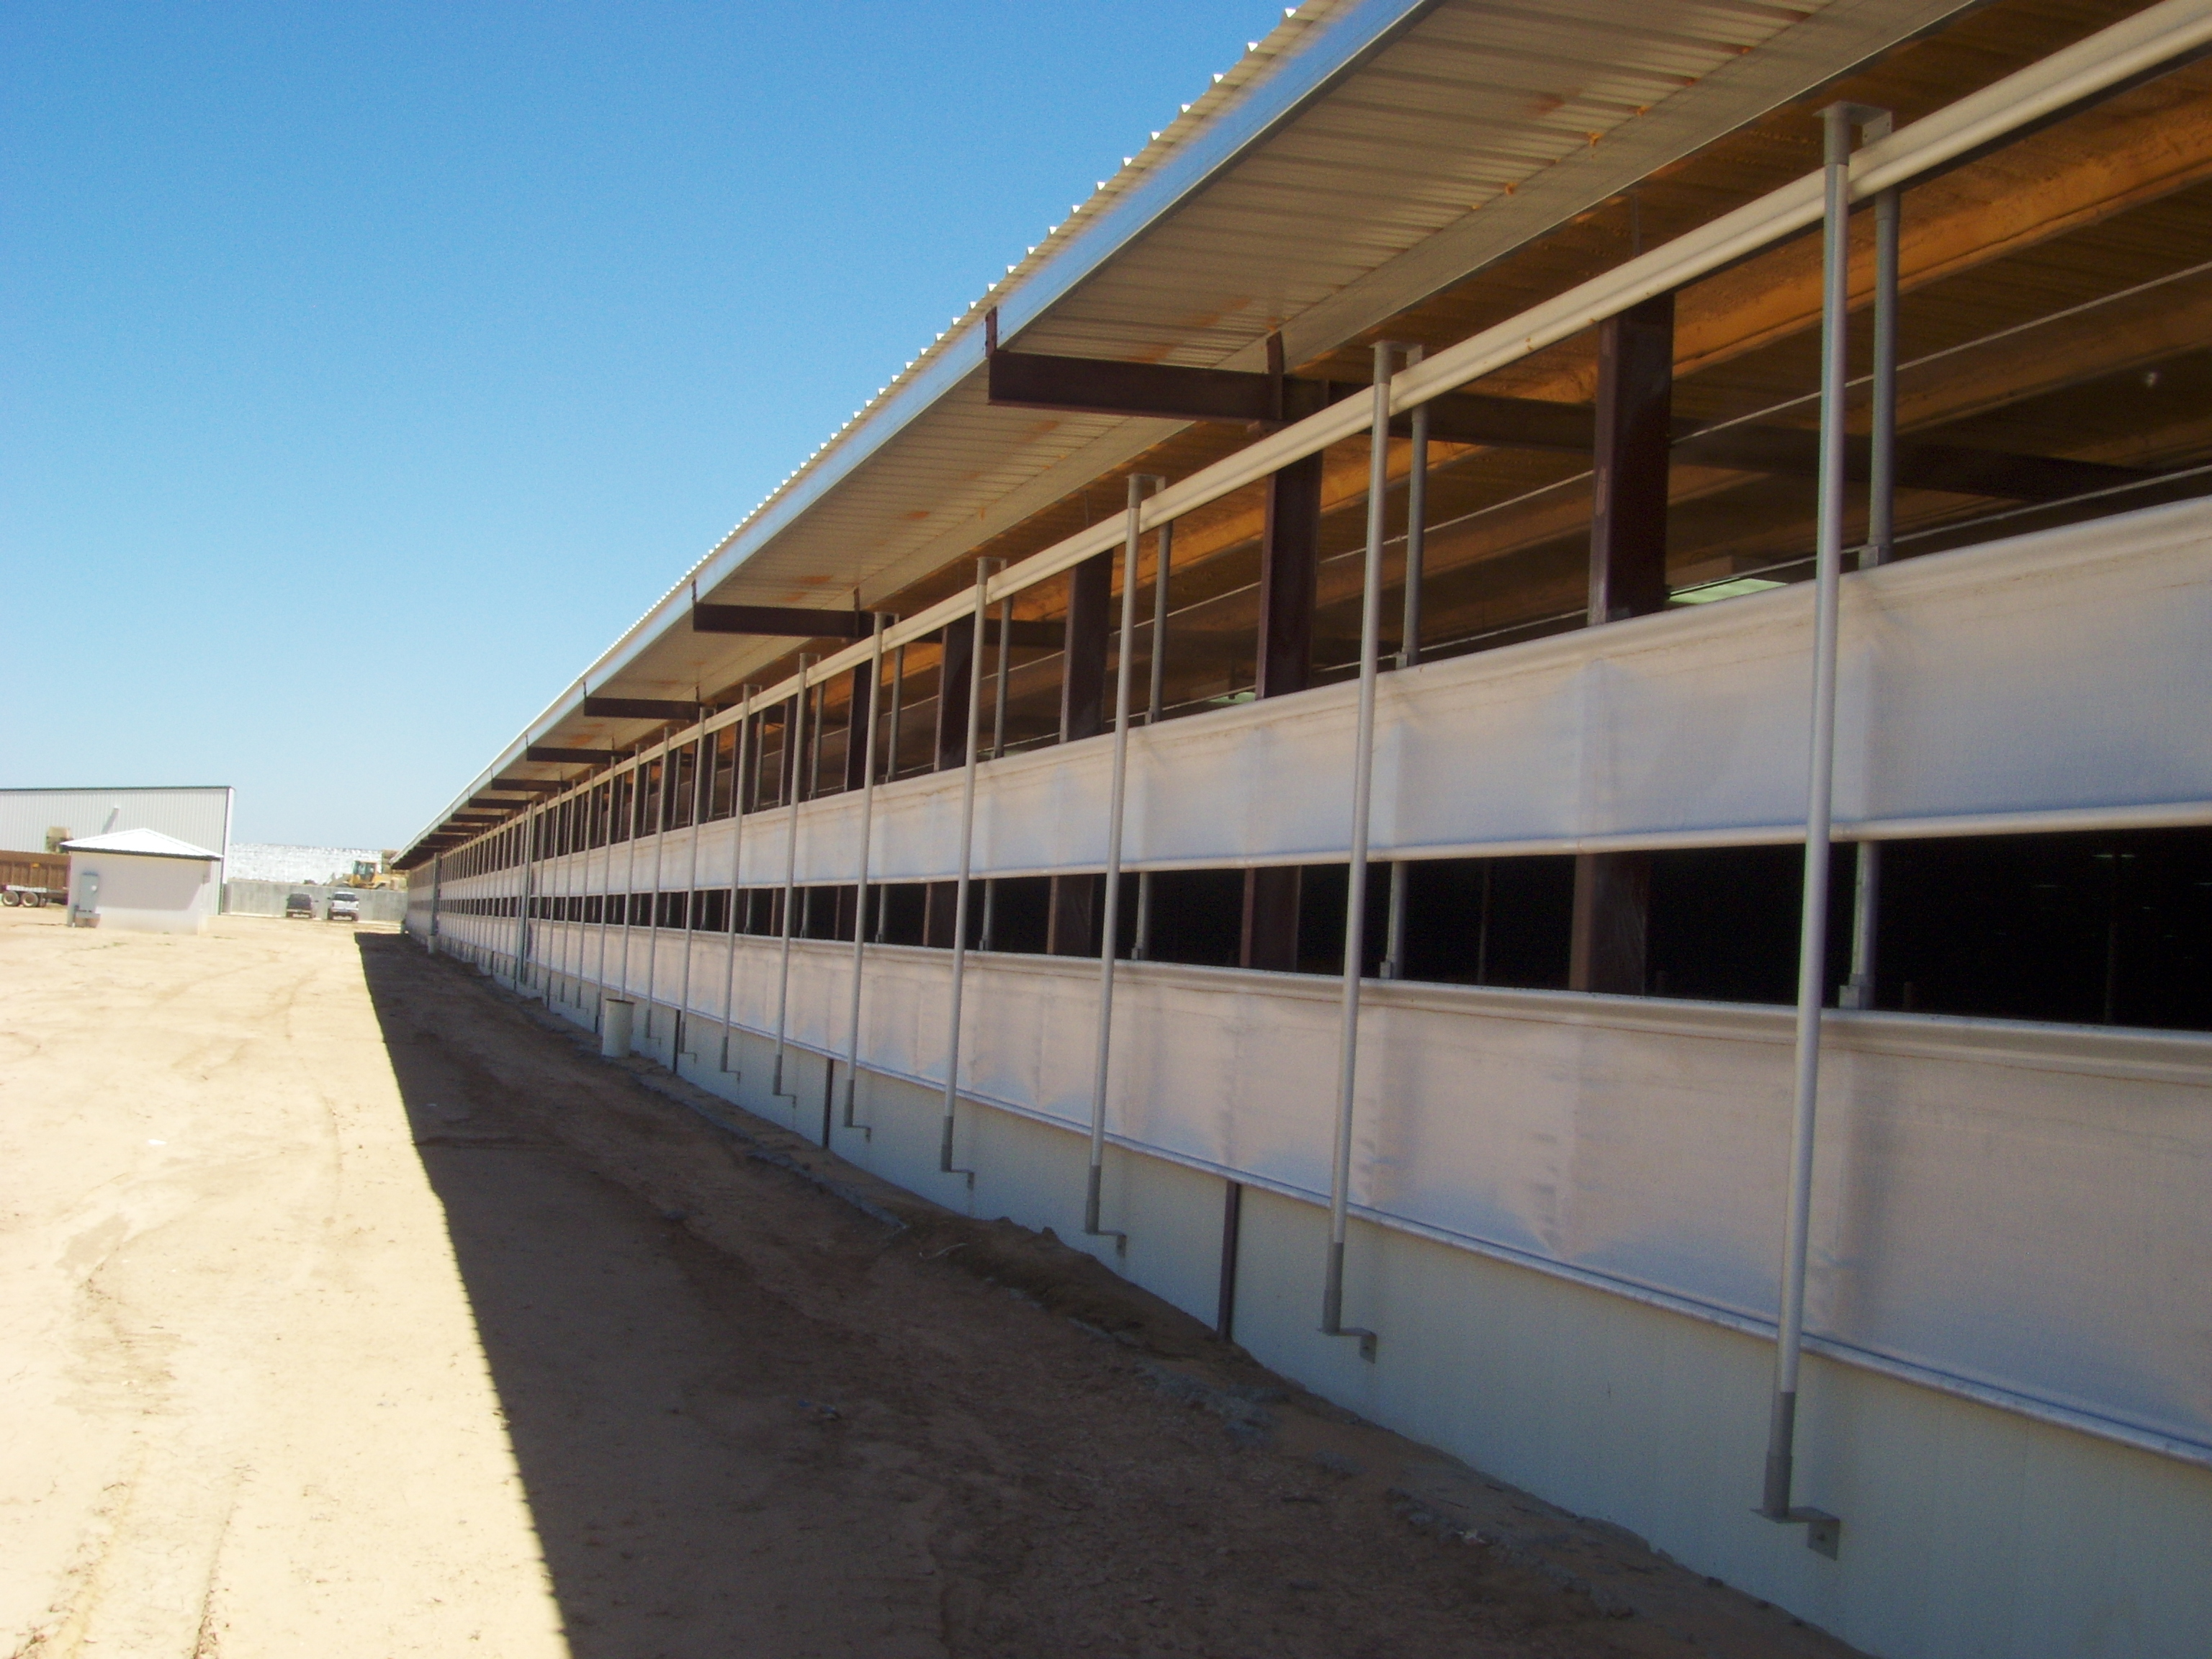 Roll-O-Matic: Agricultural & Livestock Barn Curtain System